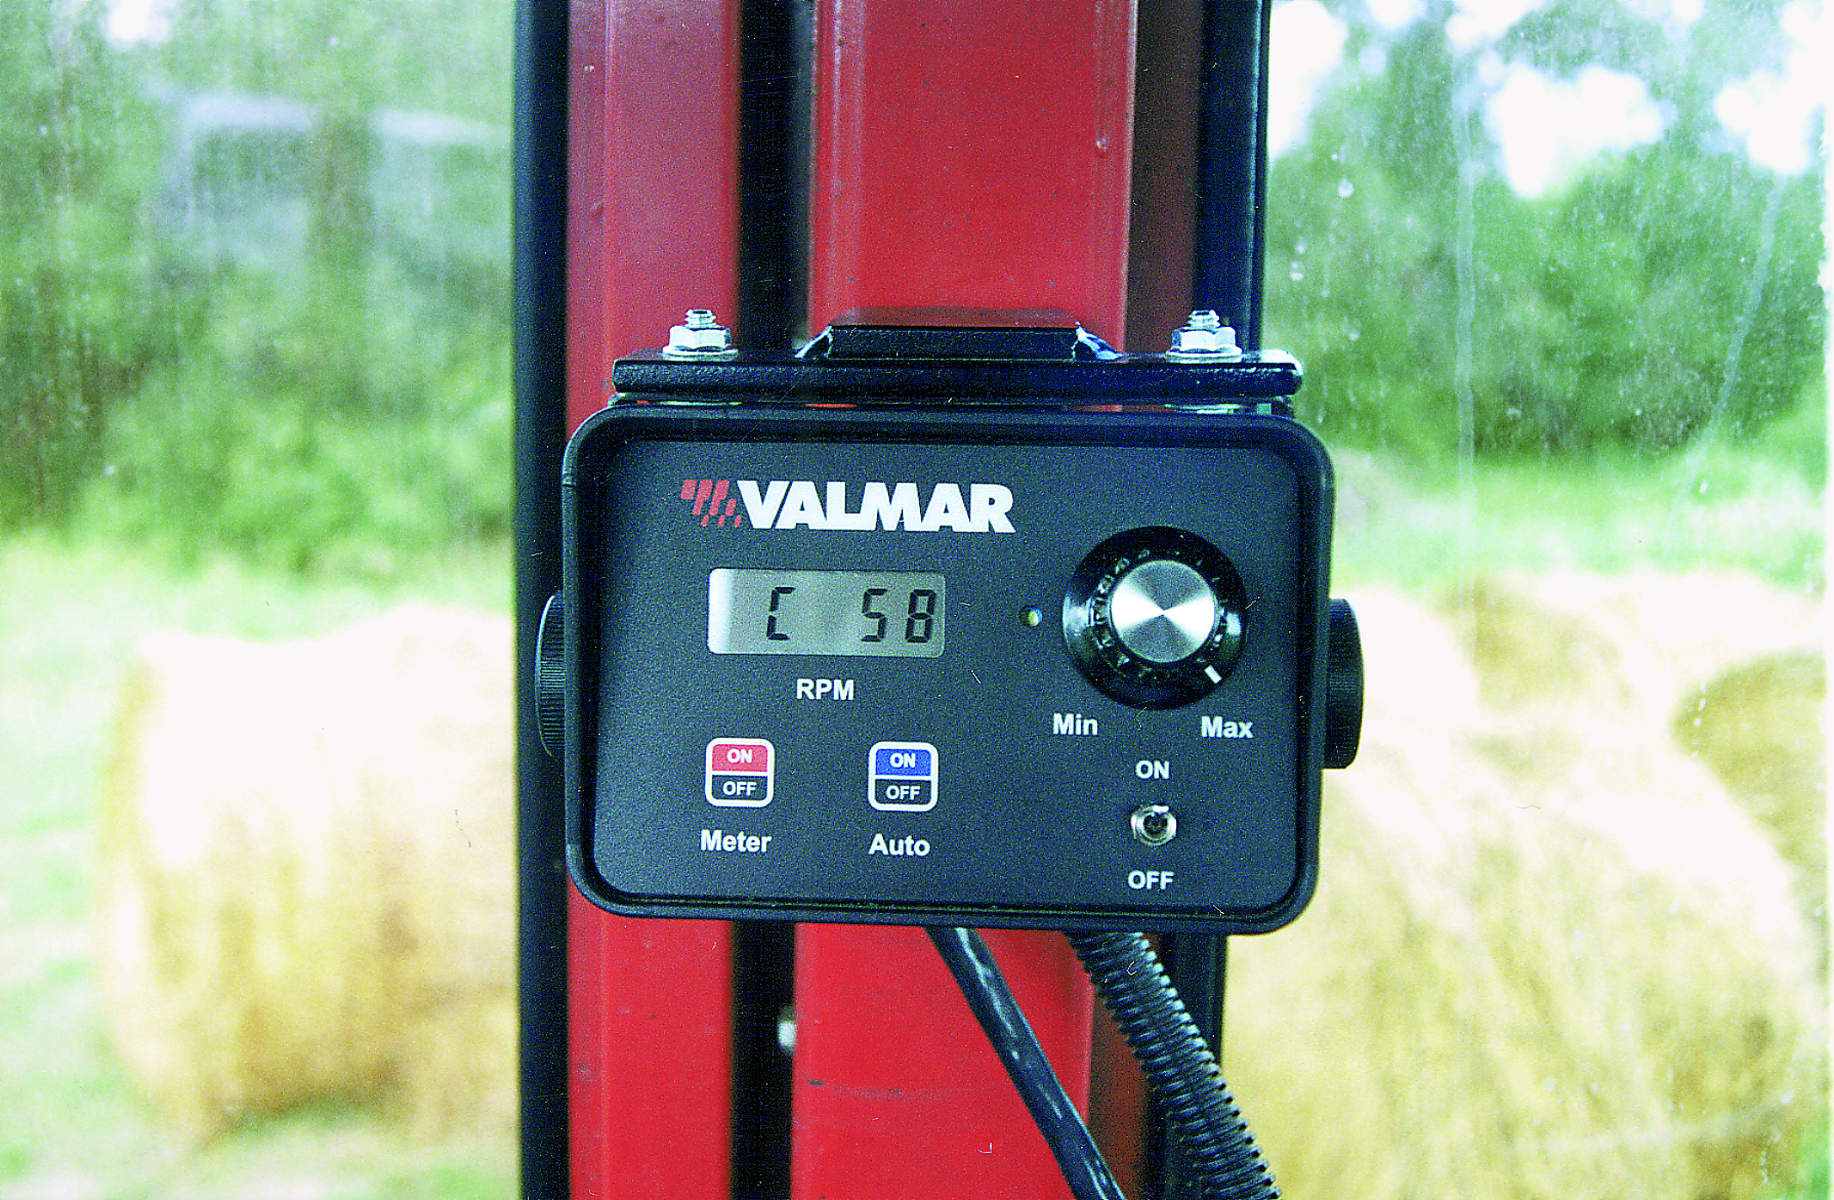 VALMAR 455 GRANULAR APPLICATOR